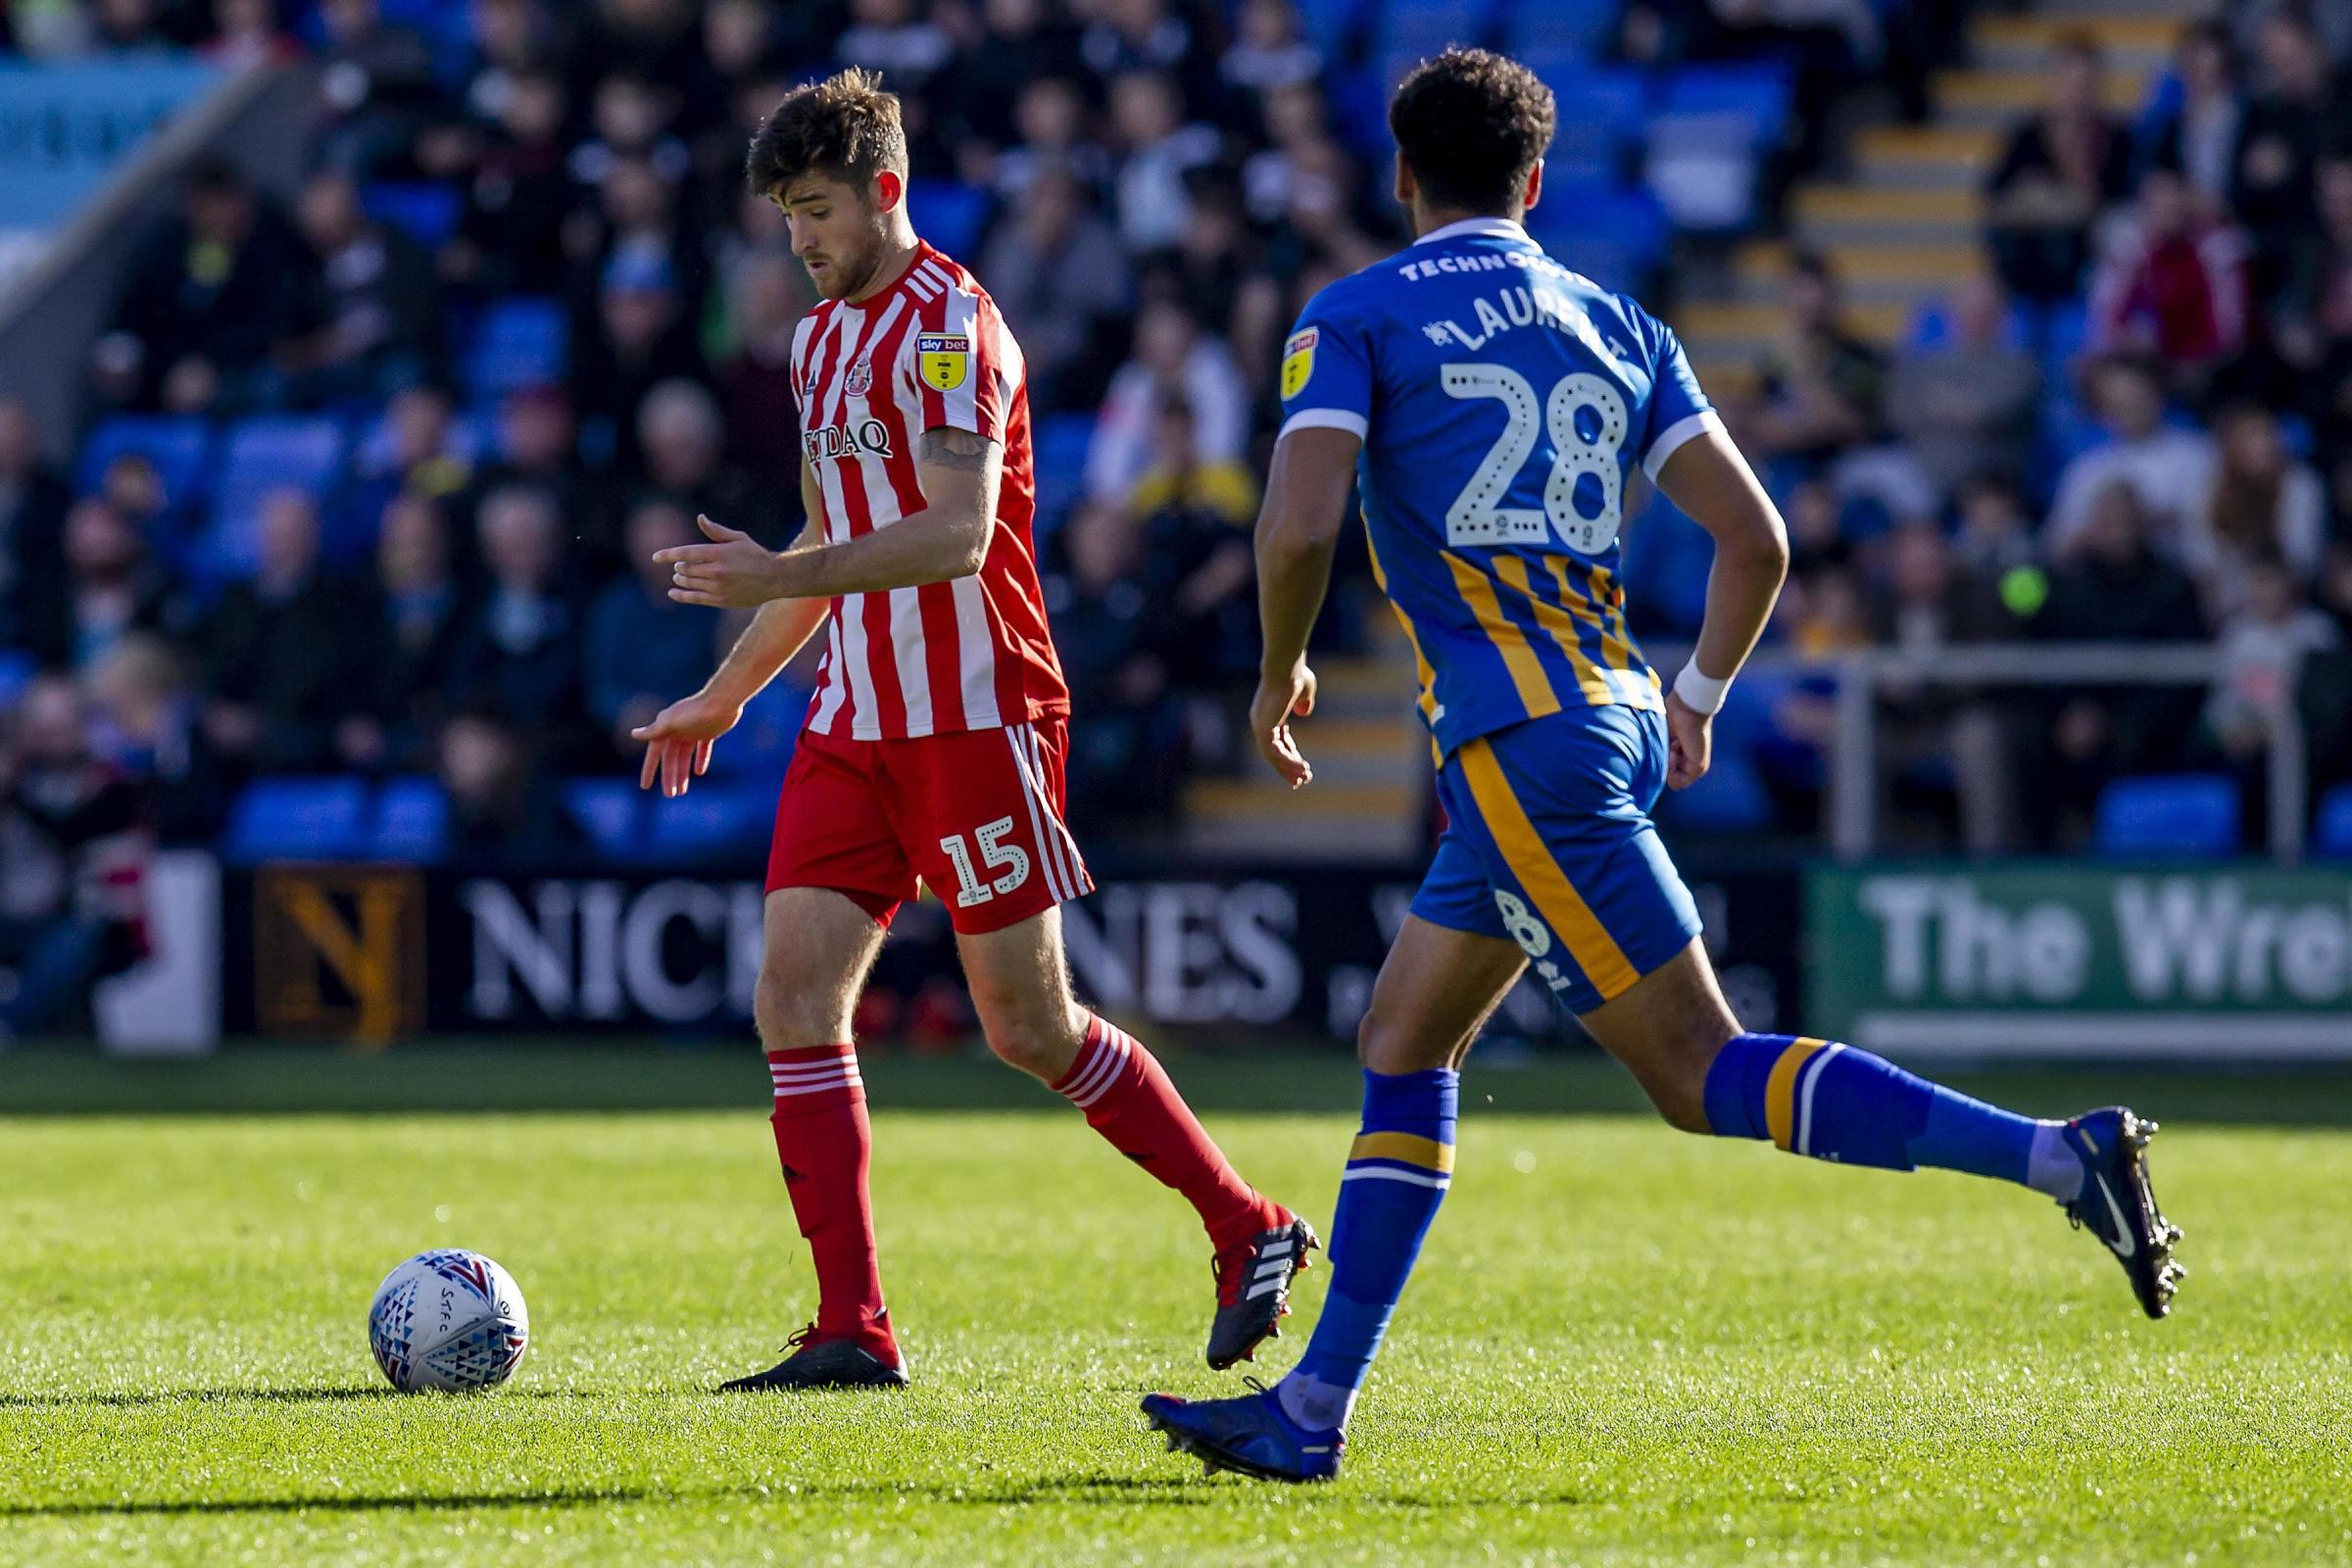 Jack Baldwin of Sunderland AFC on the ball during the Sky Bet League 1 match between Shrewsbury Town and Sunderland at Greenhous Meadow, Shrewsbury on Saturday 20th October 2018. (Credit: Alan Hayward | MI News & Sport Ltd).à 	�©MI